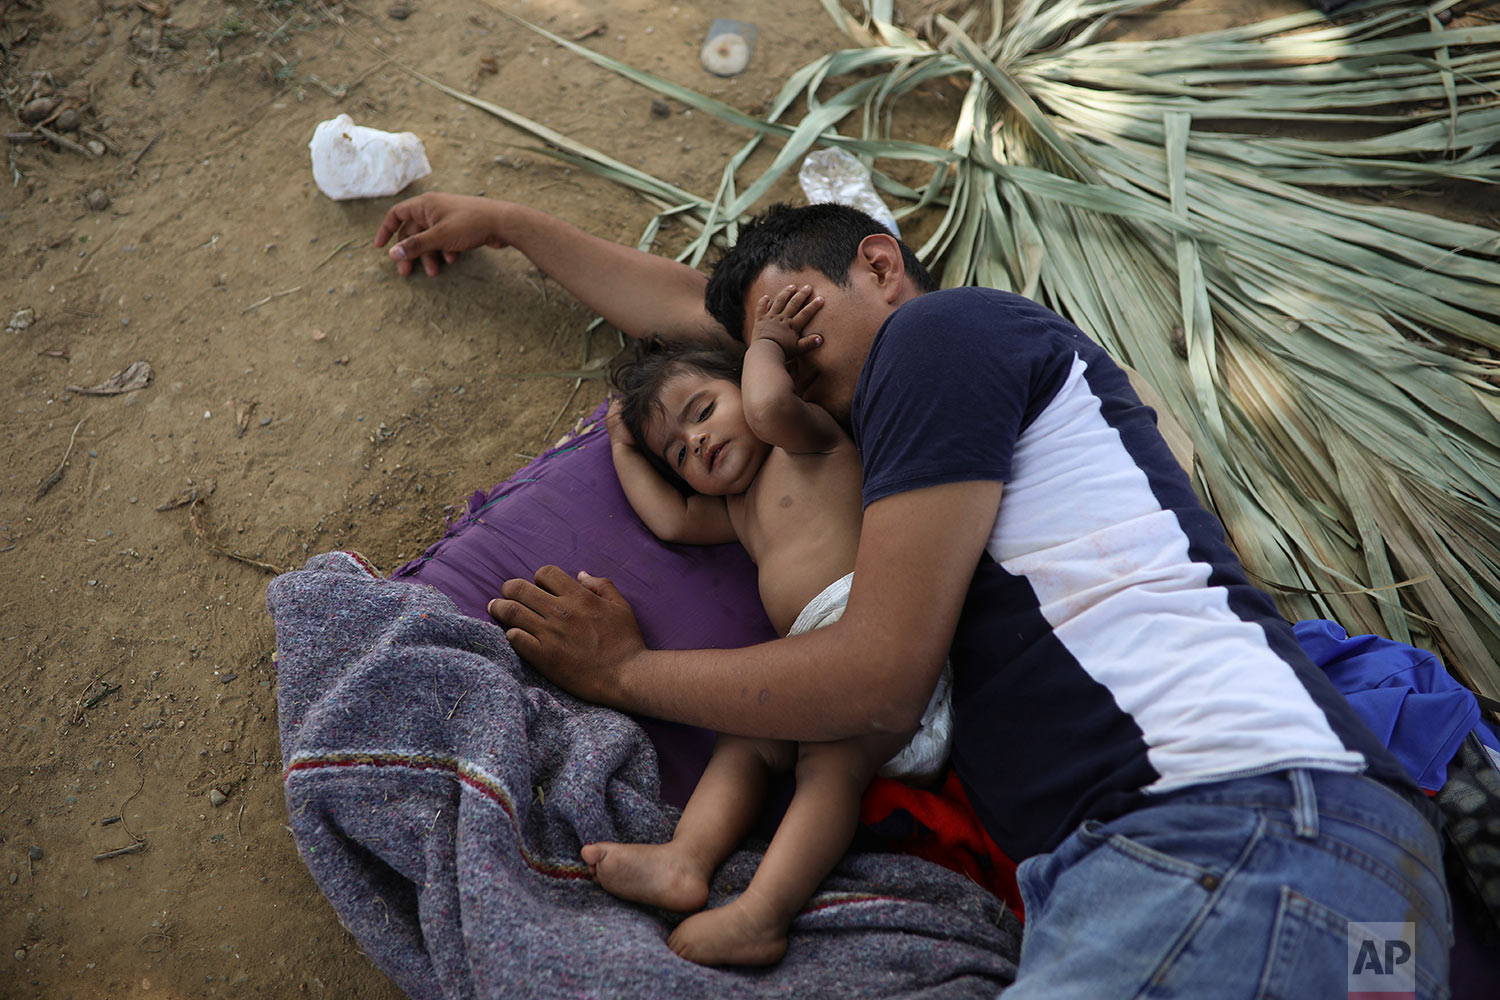 Central American migrants rest during the annual Migrant Stations of the Cross caravan at a sports center during the group's stop in Matias Romero, Oaxaca state, Mexico, Monday, April 2, 2018. (AP Photo/Felix Marquez)